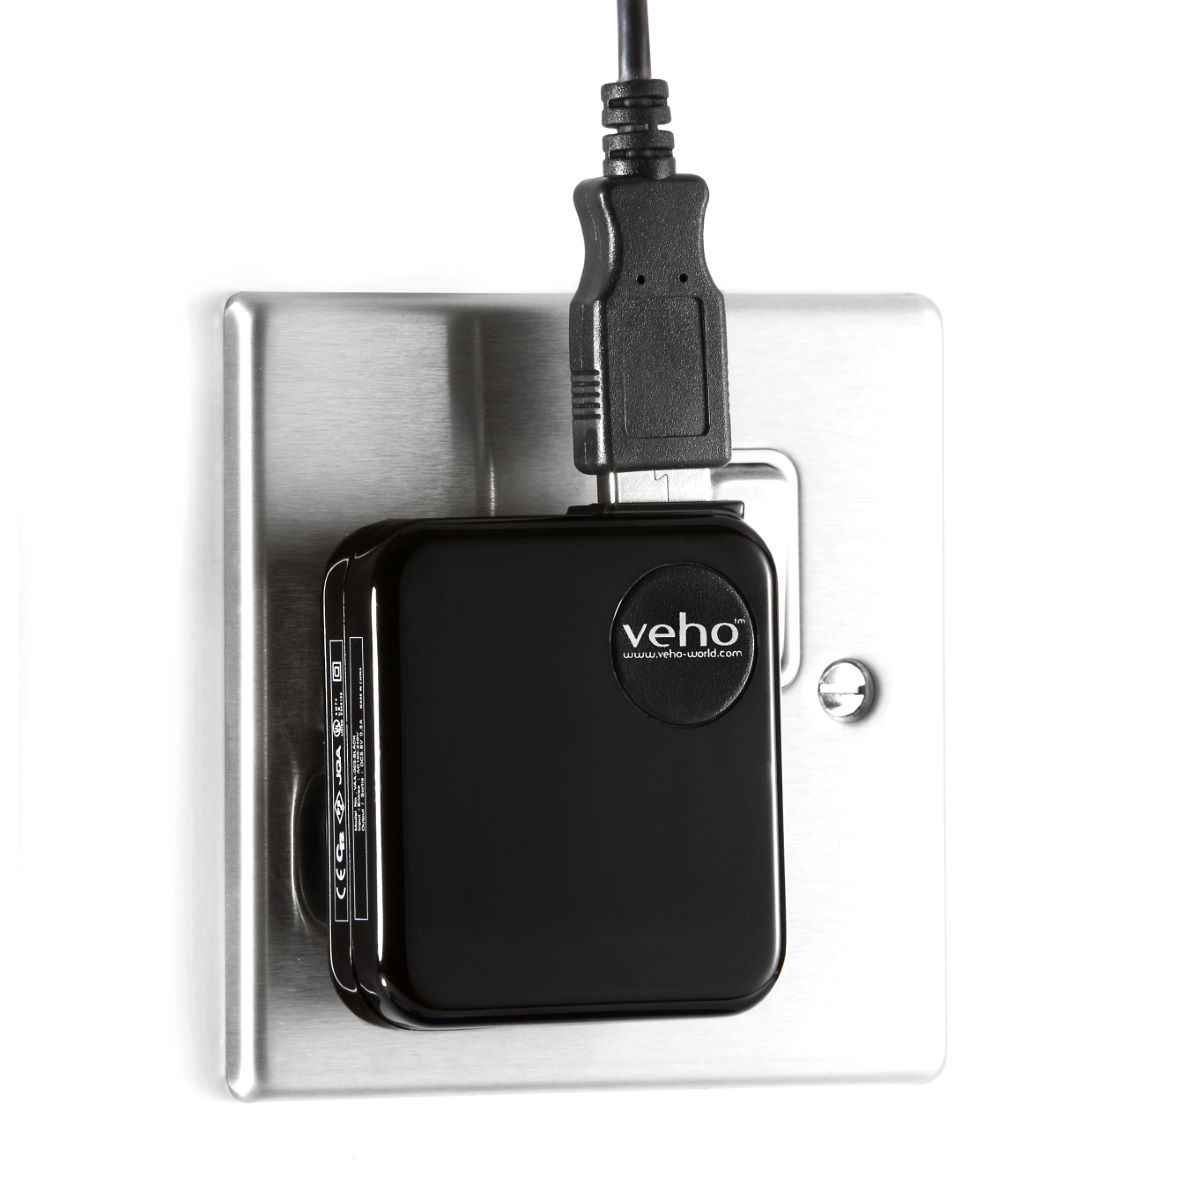 Veho Mains USB Charger   Batteries